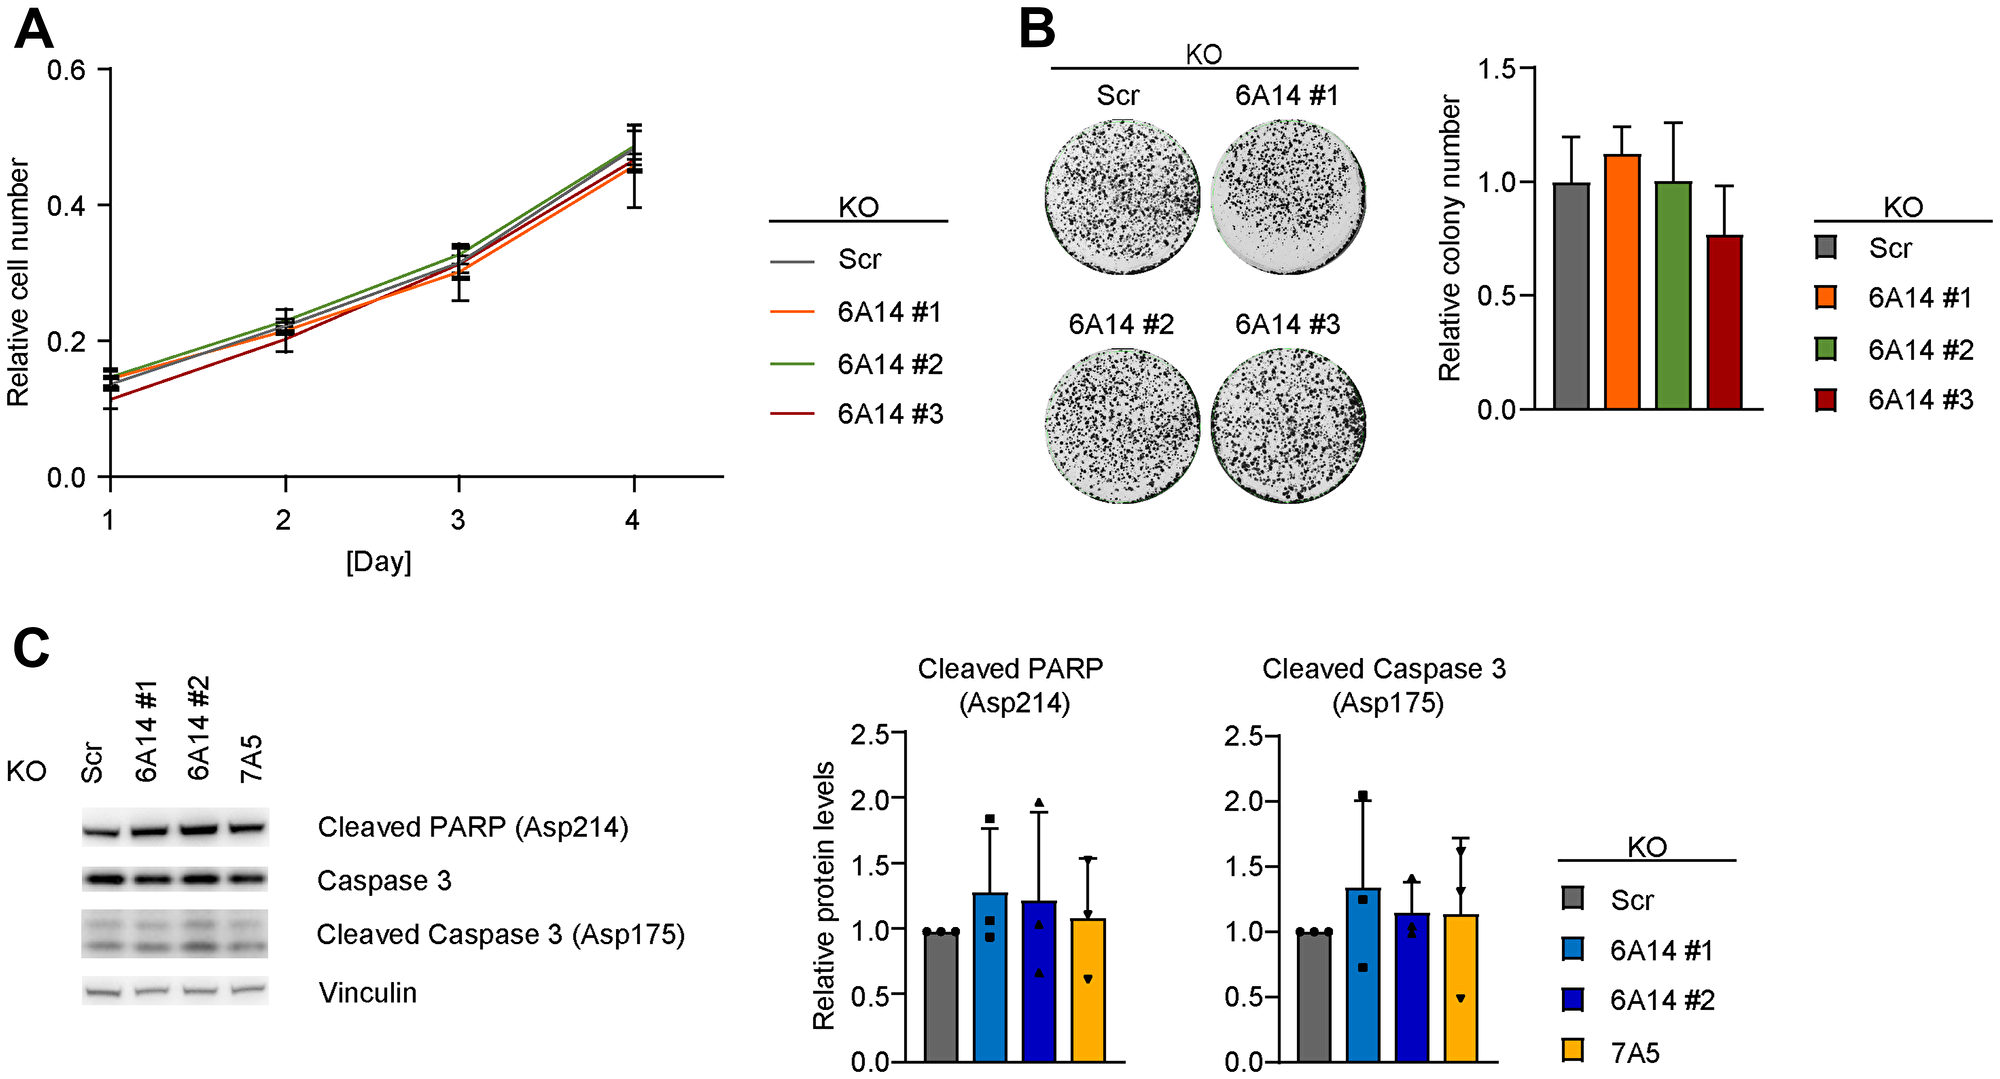 Genetic inhibition of SLC6A14 does not have a major impact on cell viability.